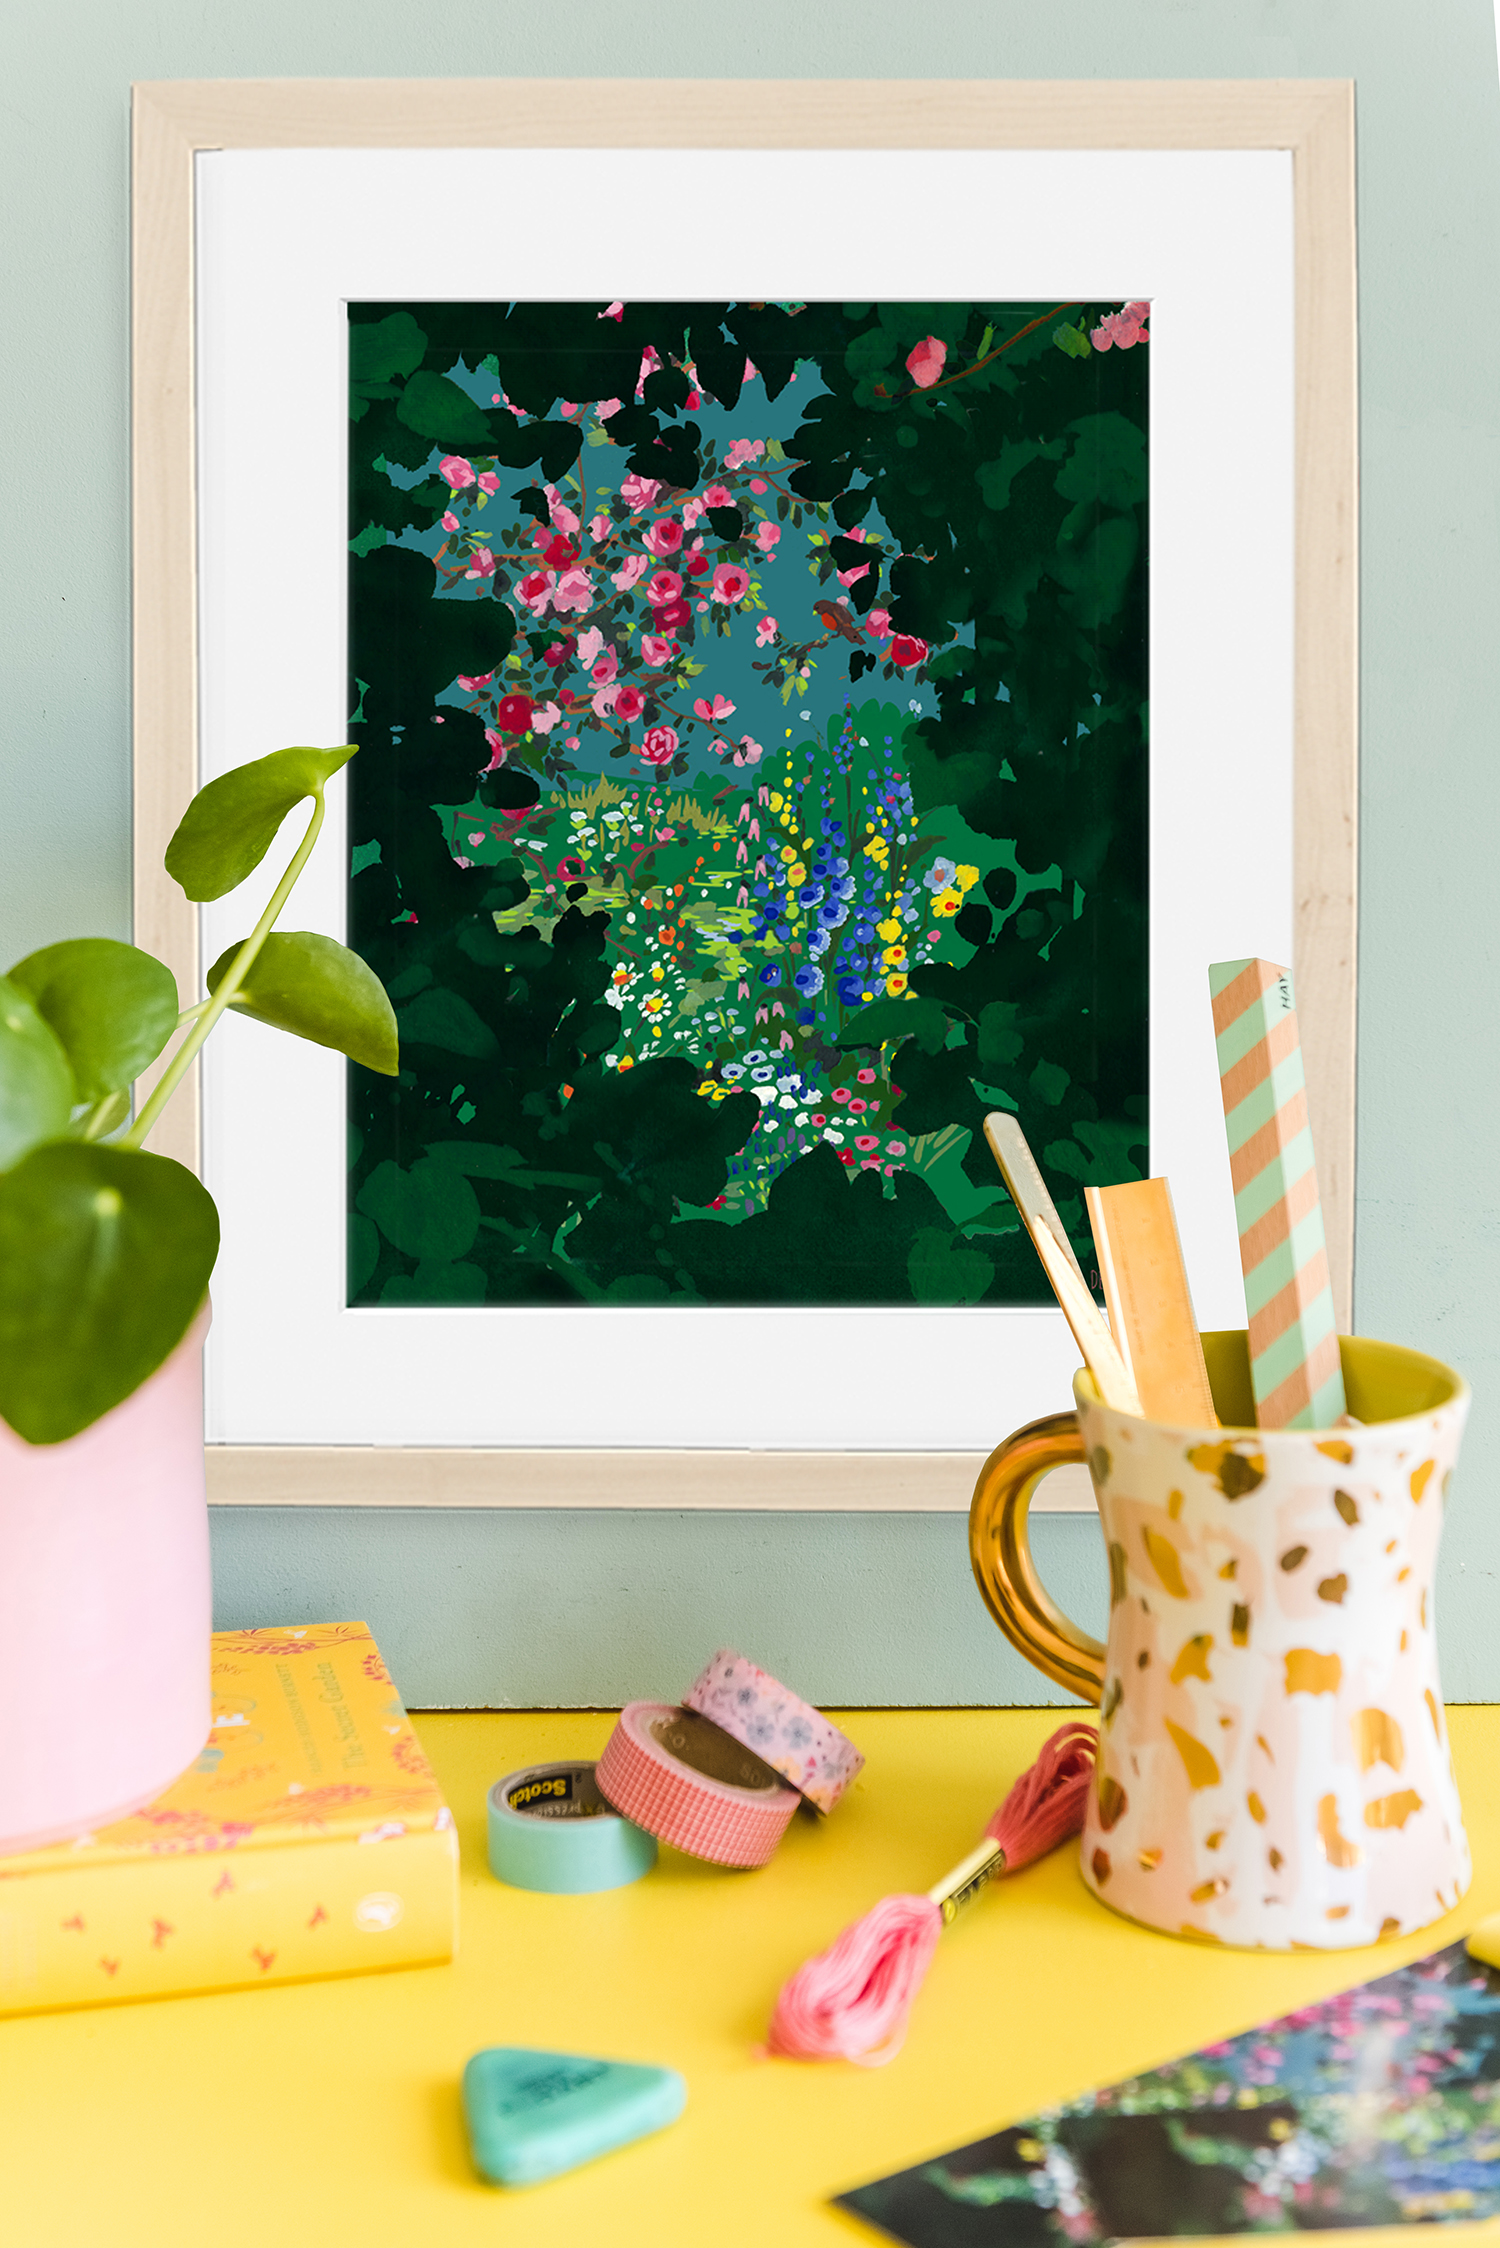 A print of flowers in a green secret garden tunnel hangs on the wall in front of a plant and some craft supplies